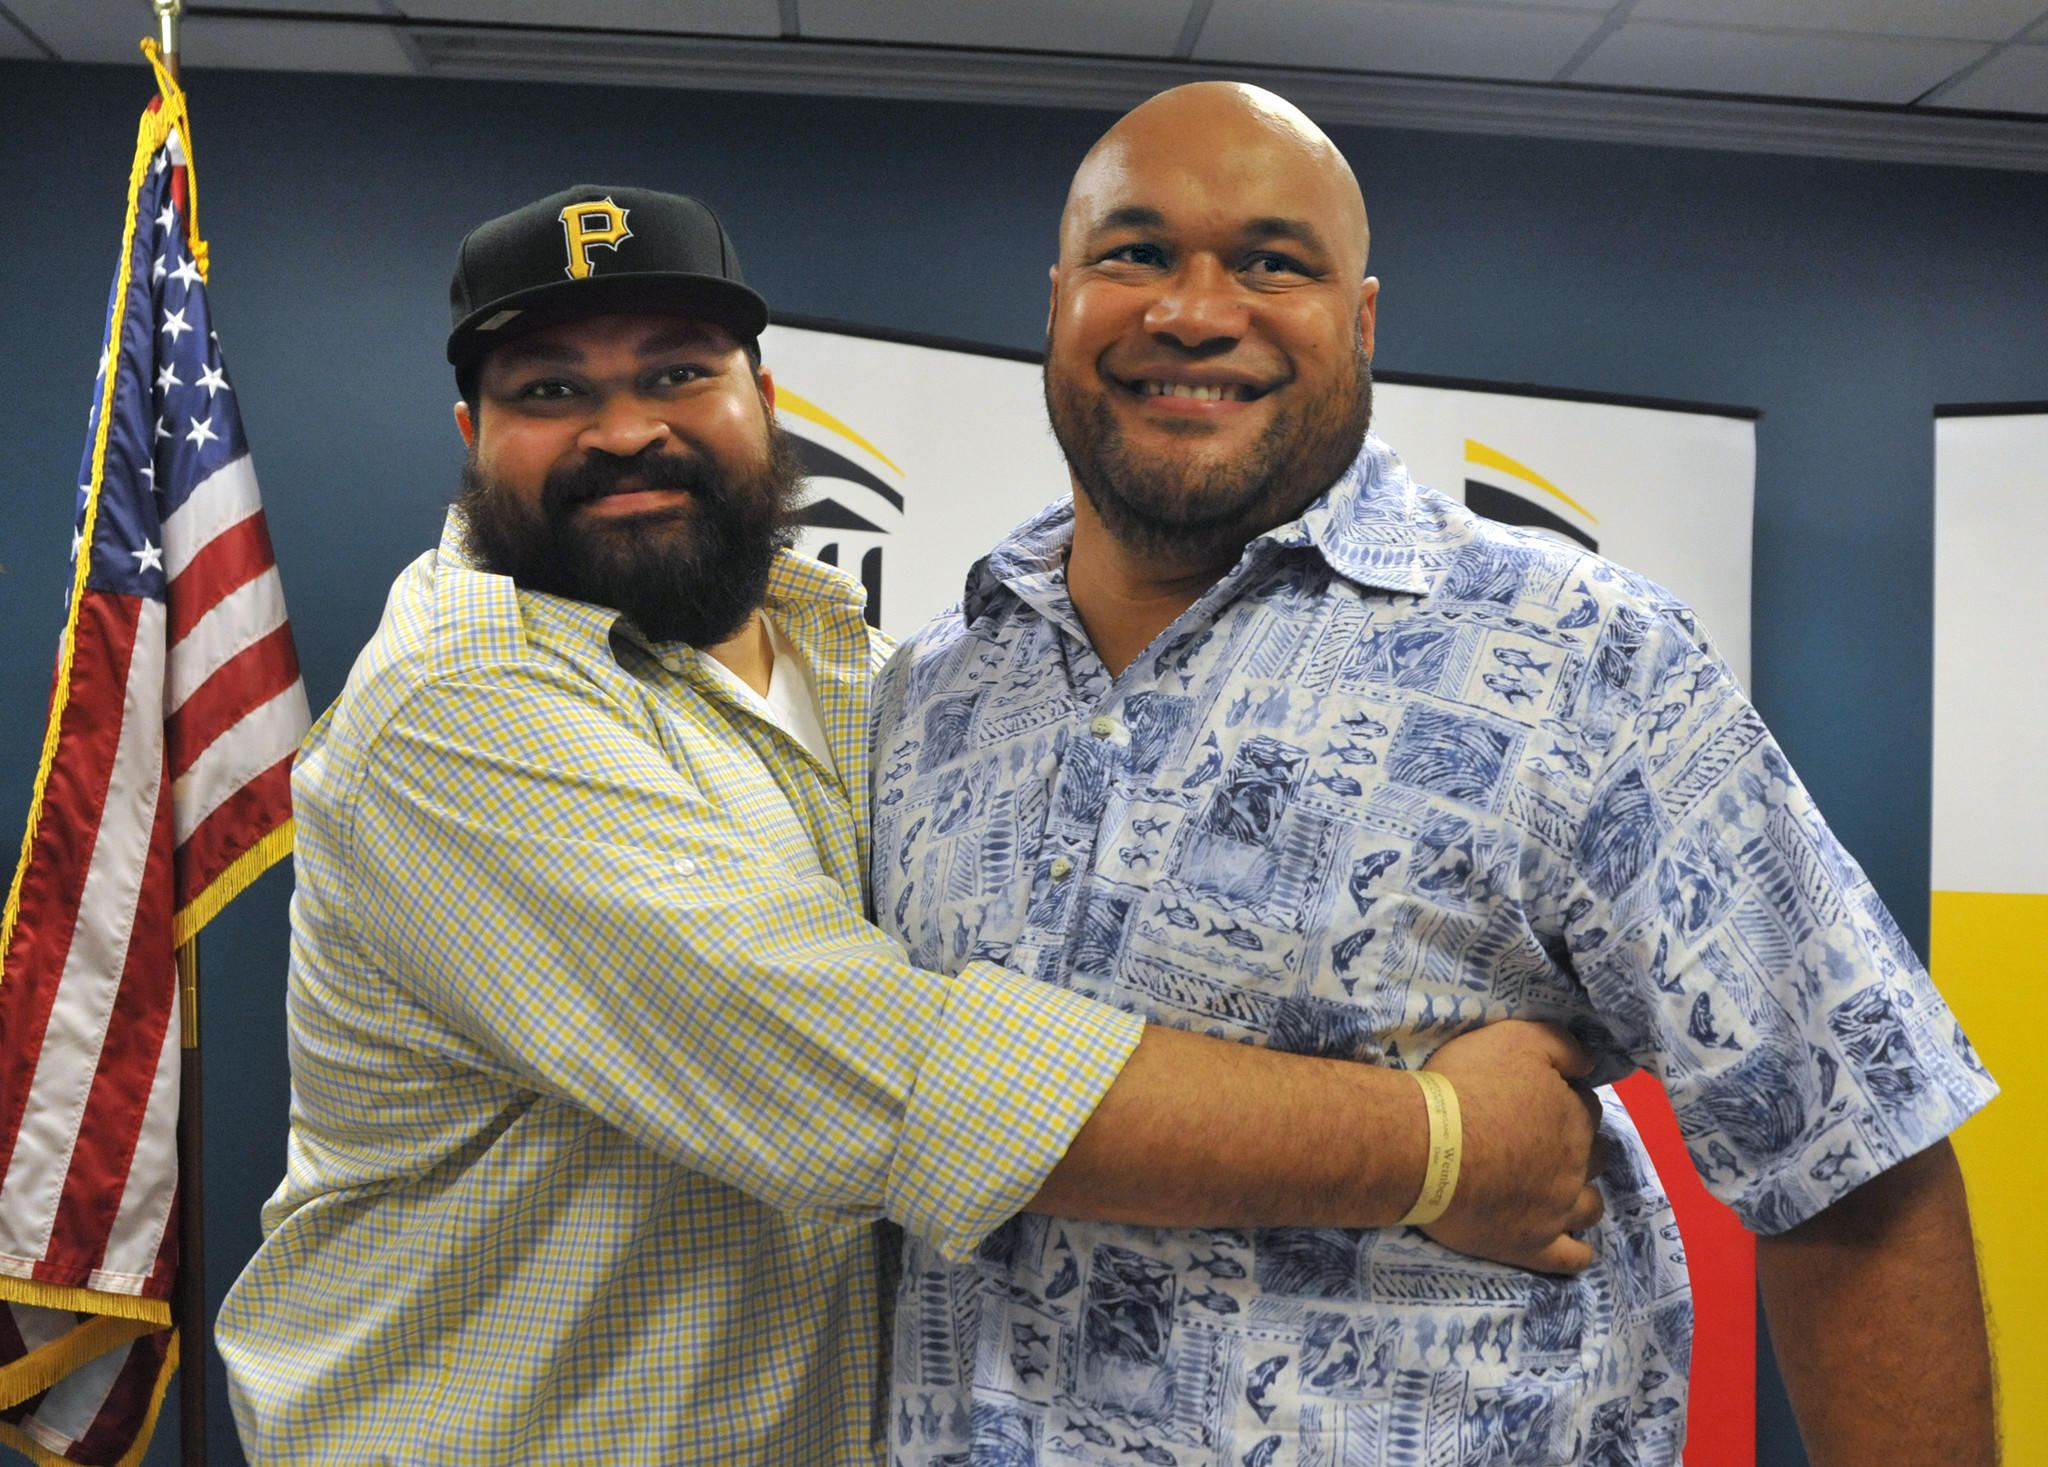 Former Pittsburgh Steeler Chris Kemoeatu, left, received a kidney from his brother, Ma'ake Kemoeatu, a former Ravens player, in a transplant operation on Aug. 27.